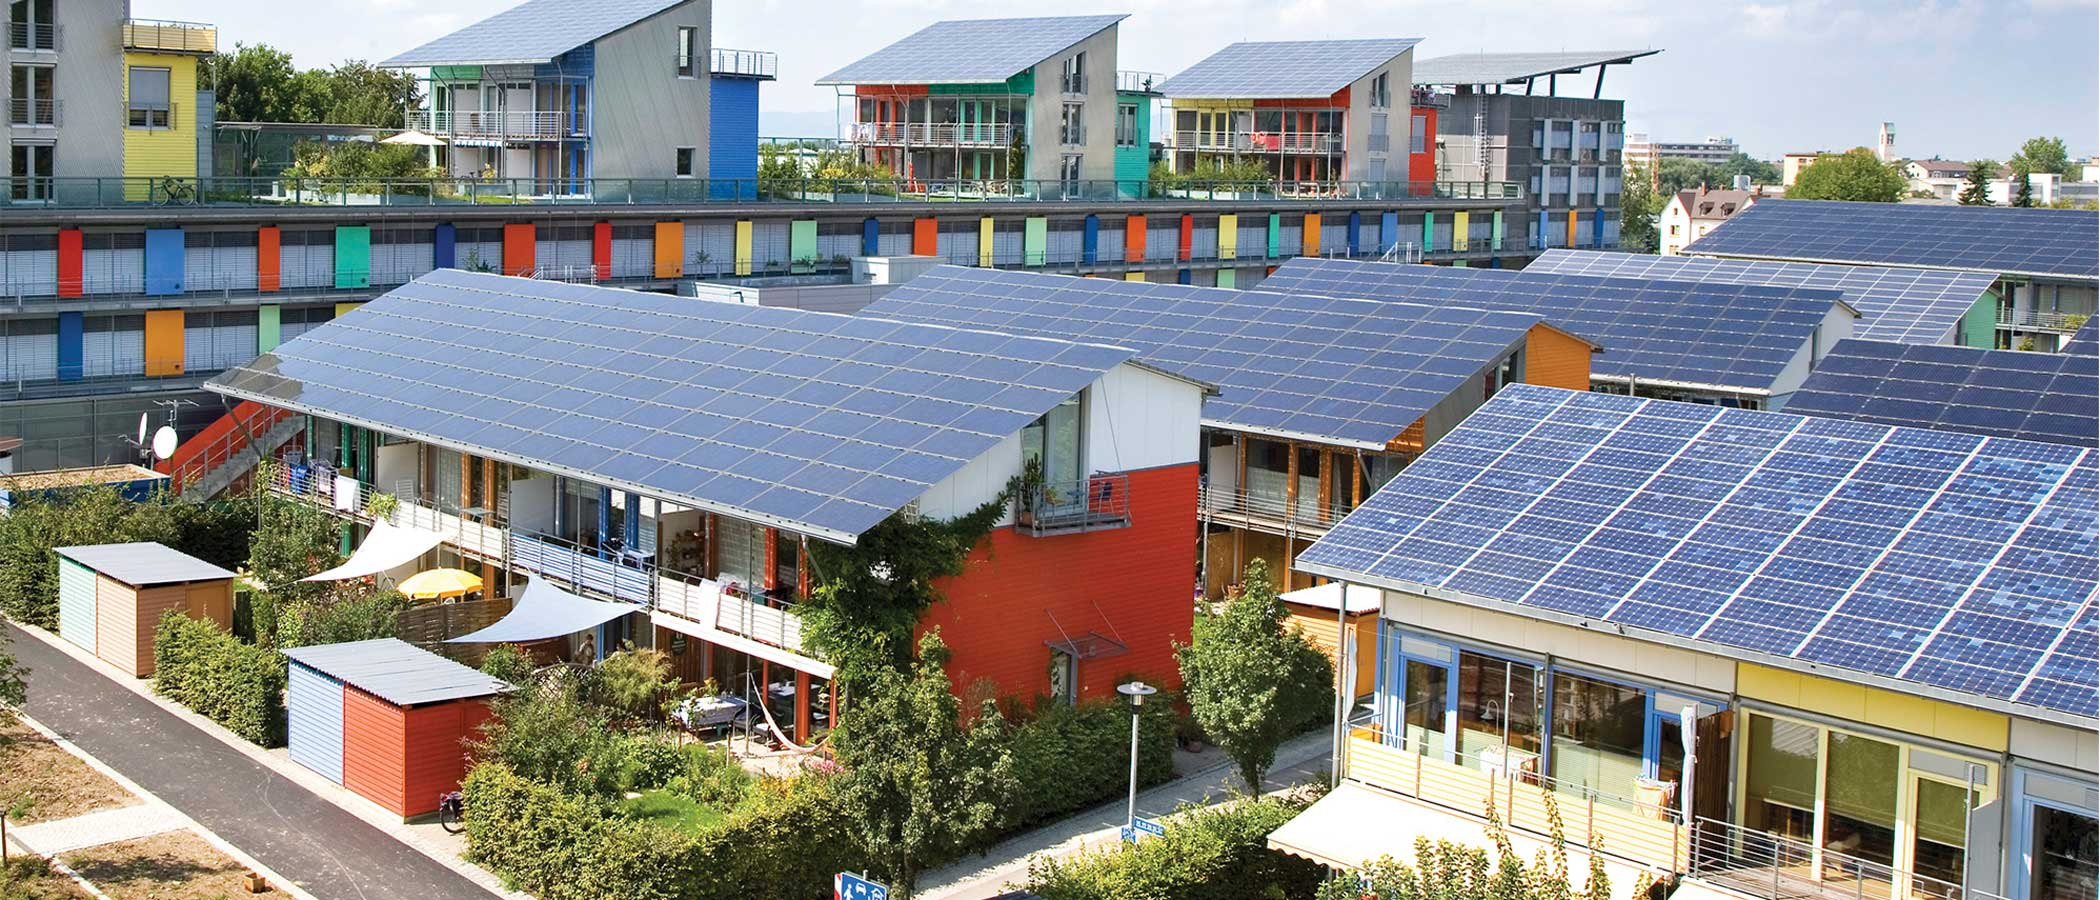 Solar Settlement, a 59-home community in Freiburg, Germany.